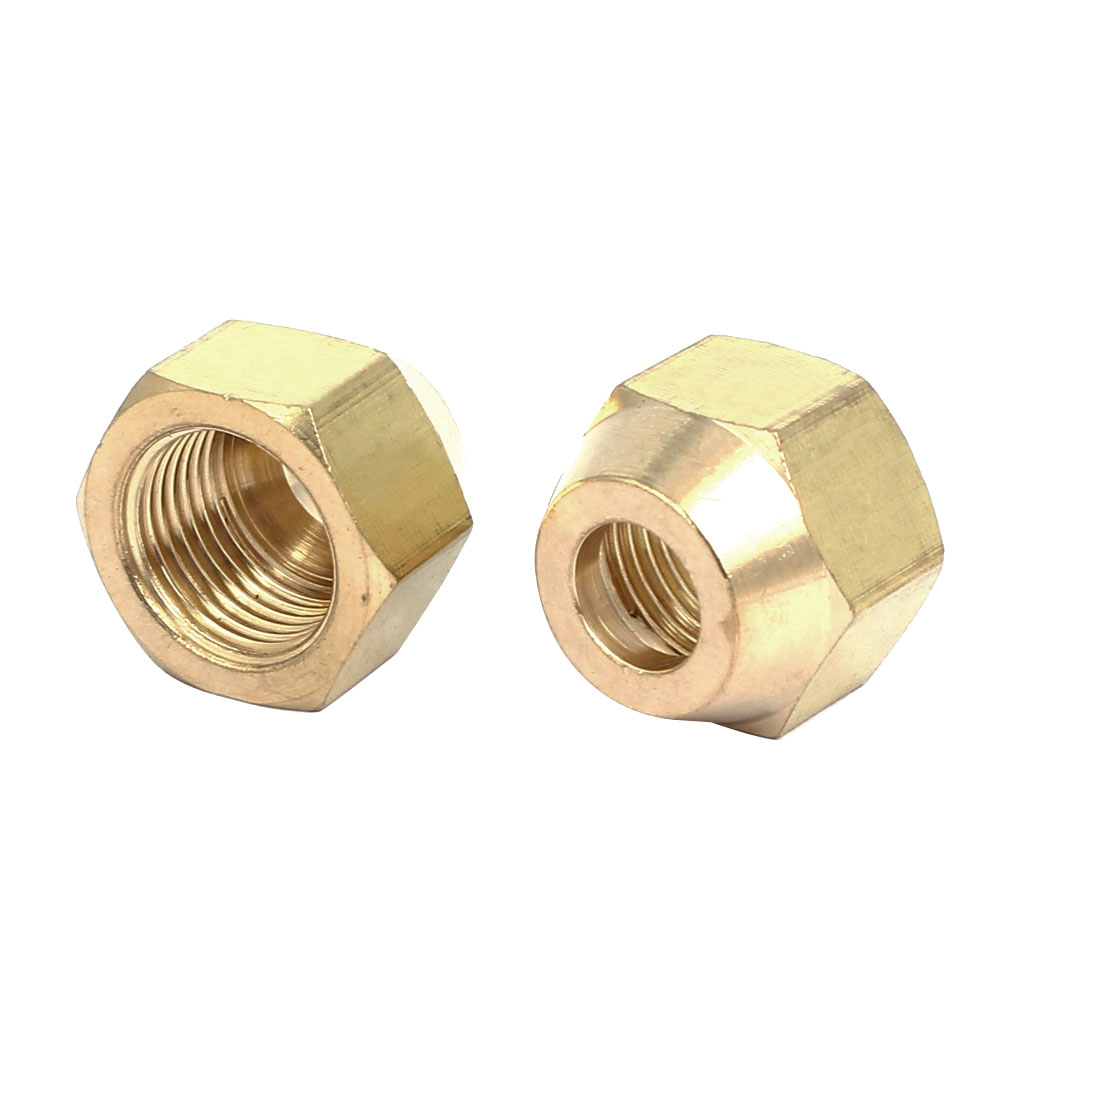 3/8BSP Brass Flare Nuts Air Conditioner Parts Fittings 2pcs for 10mm Dia Pipe